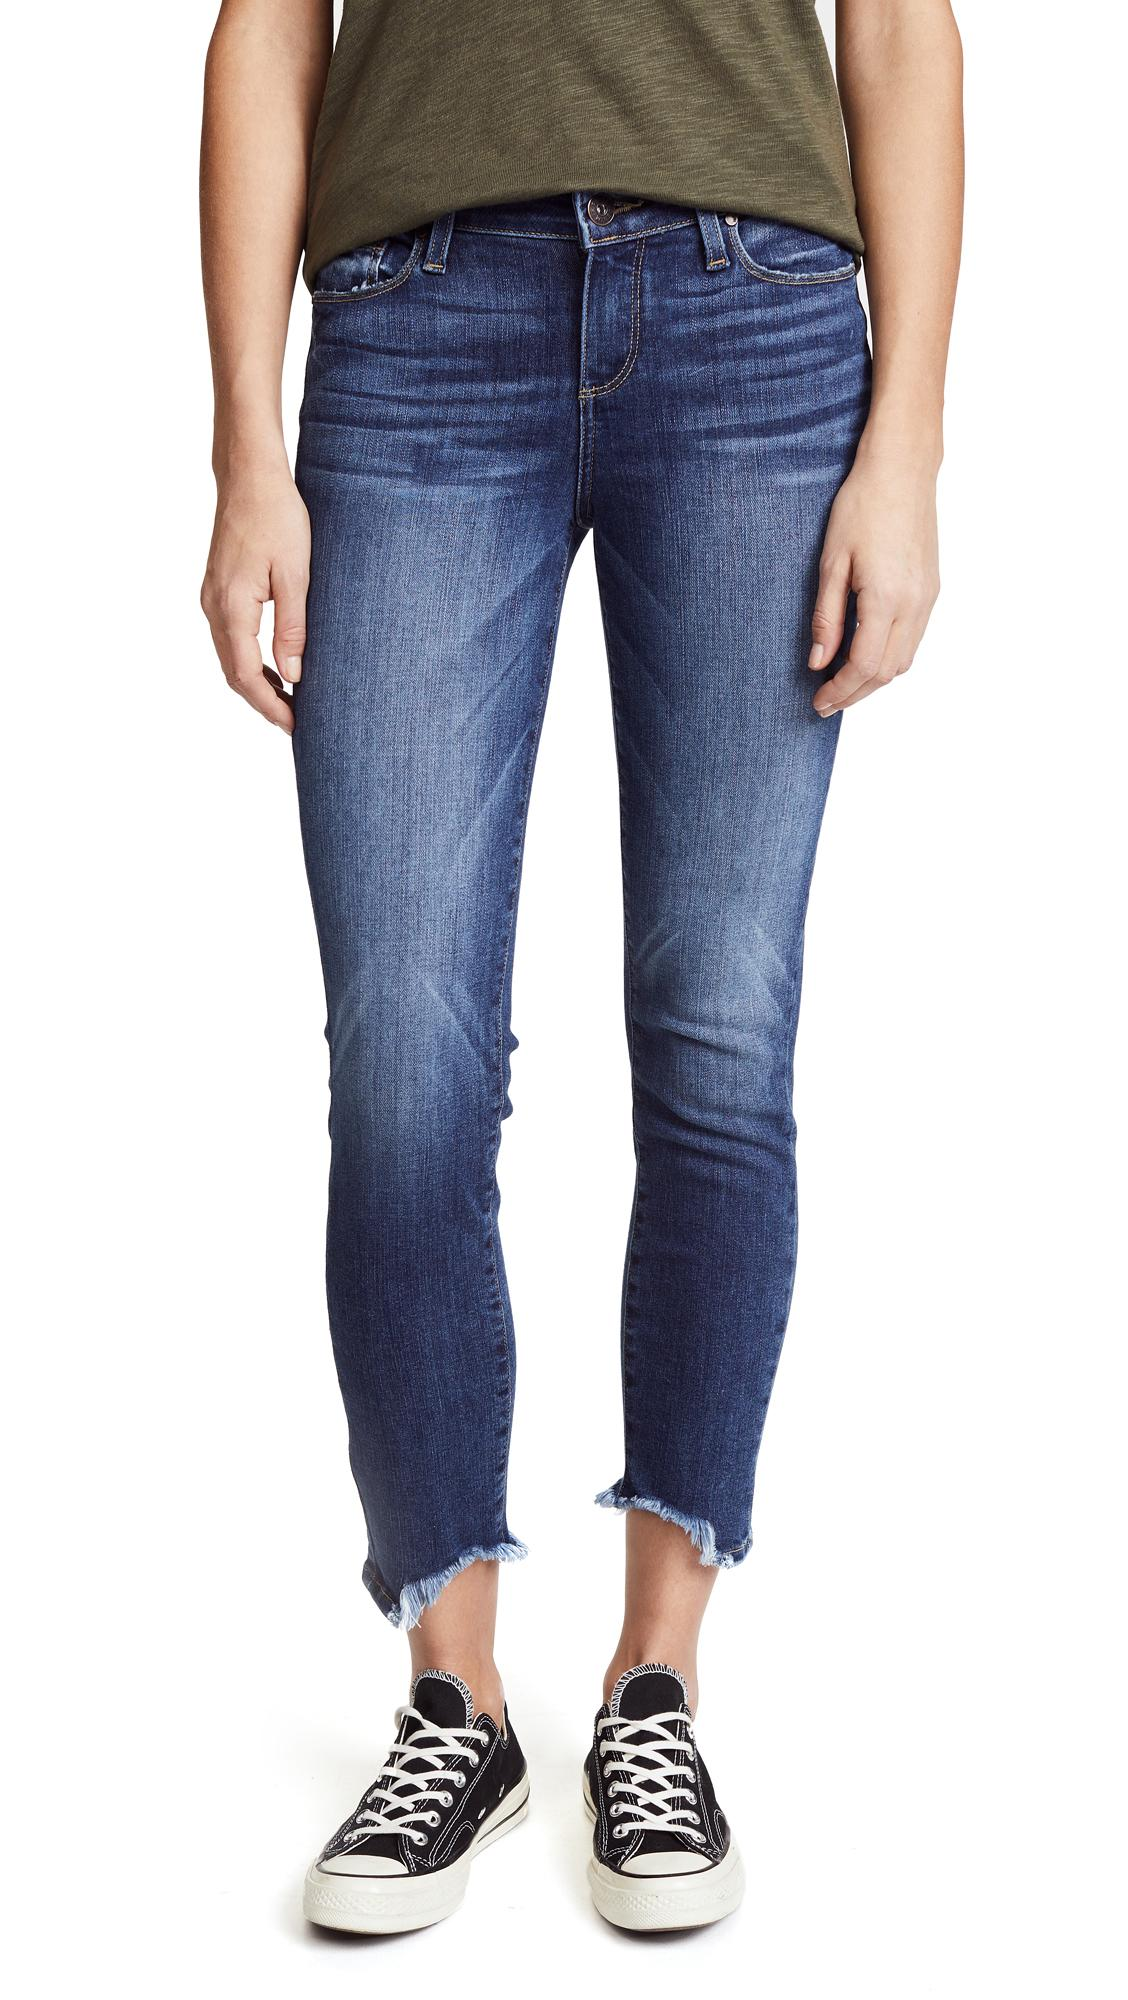 Paige Verdugo Ankle Skinny Jeans In India